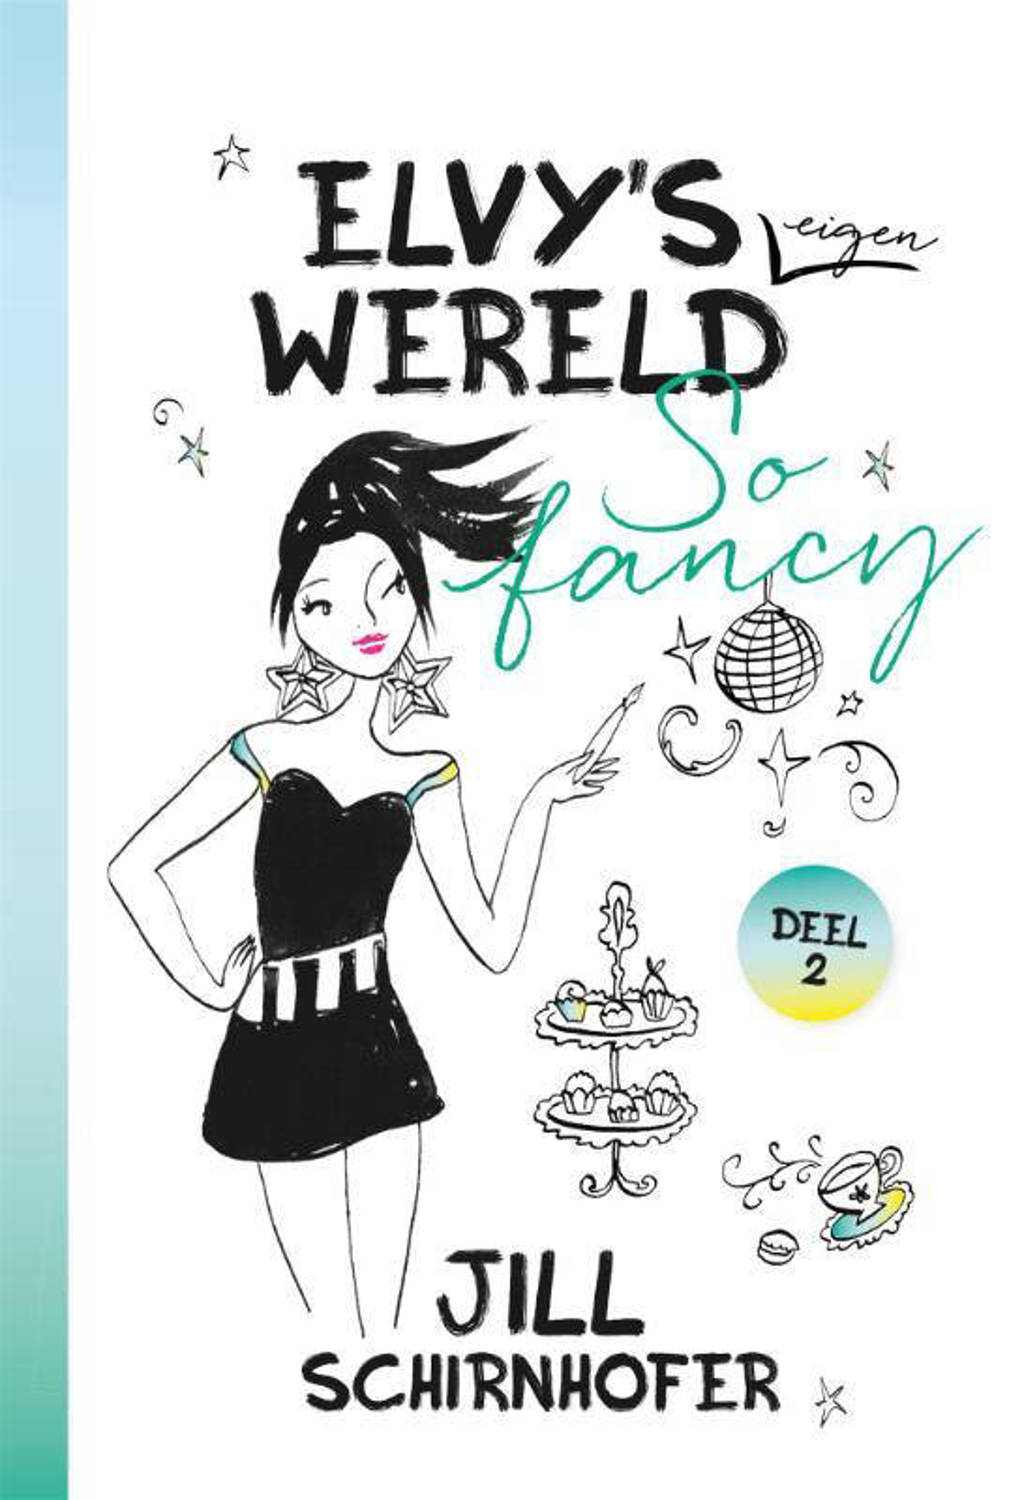 Elvy's eigen wereld: So fancy - Jill Schirnhofer